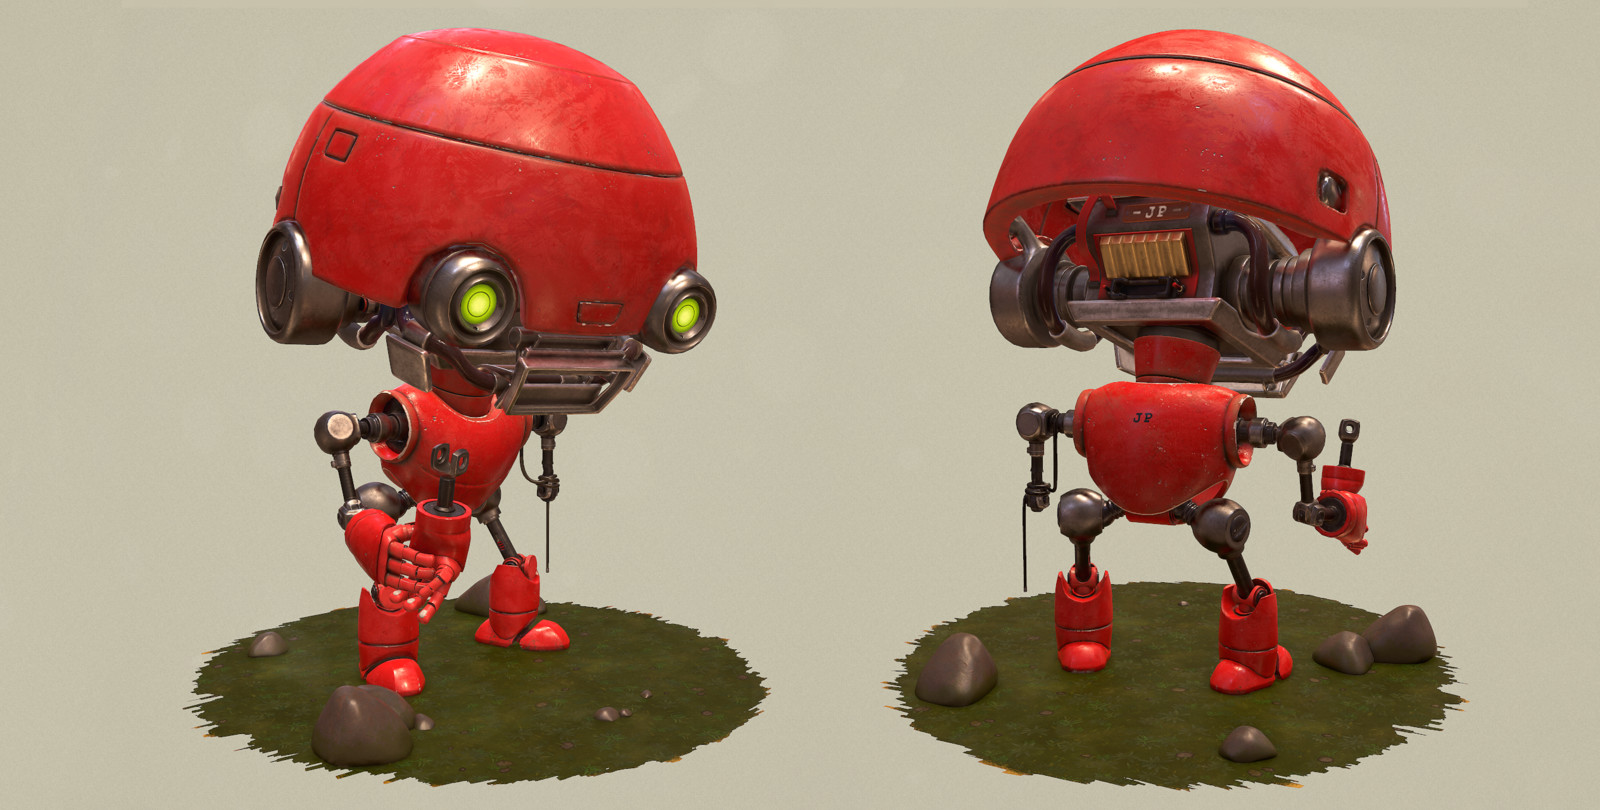 Front and back side of Robot.